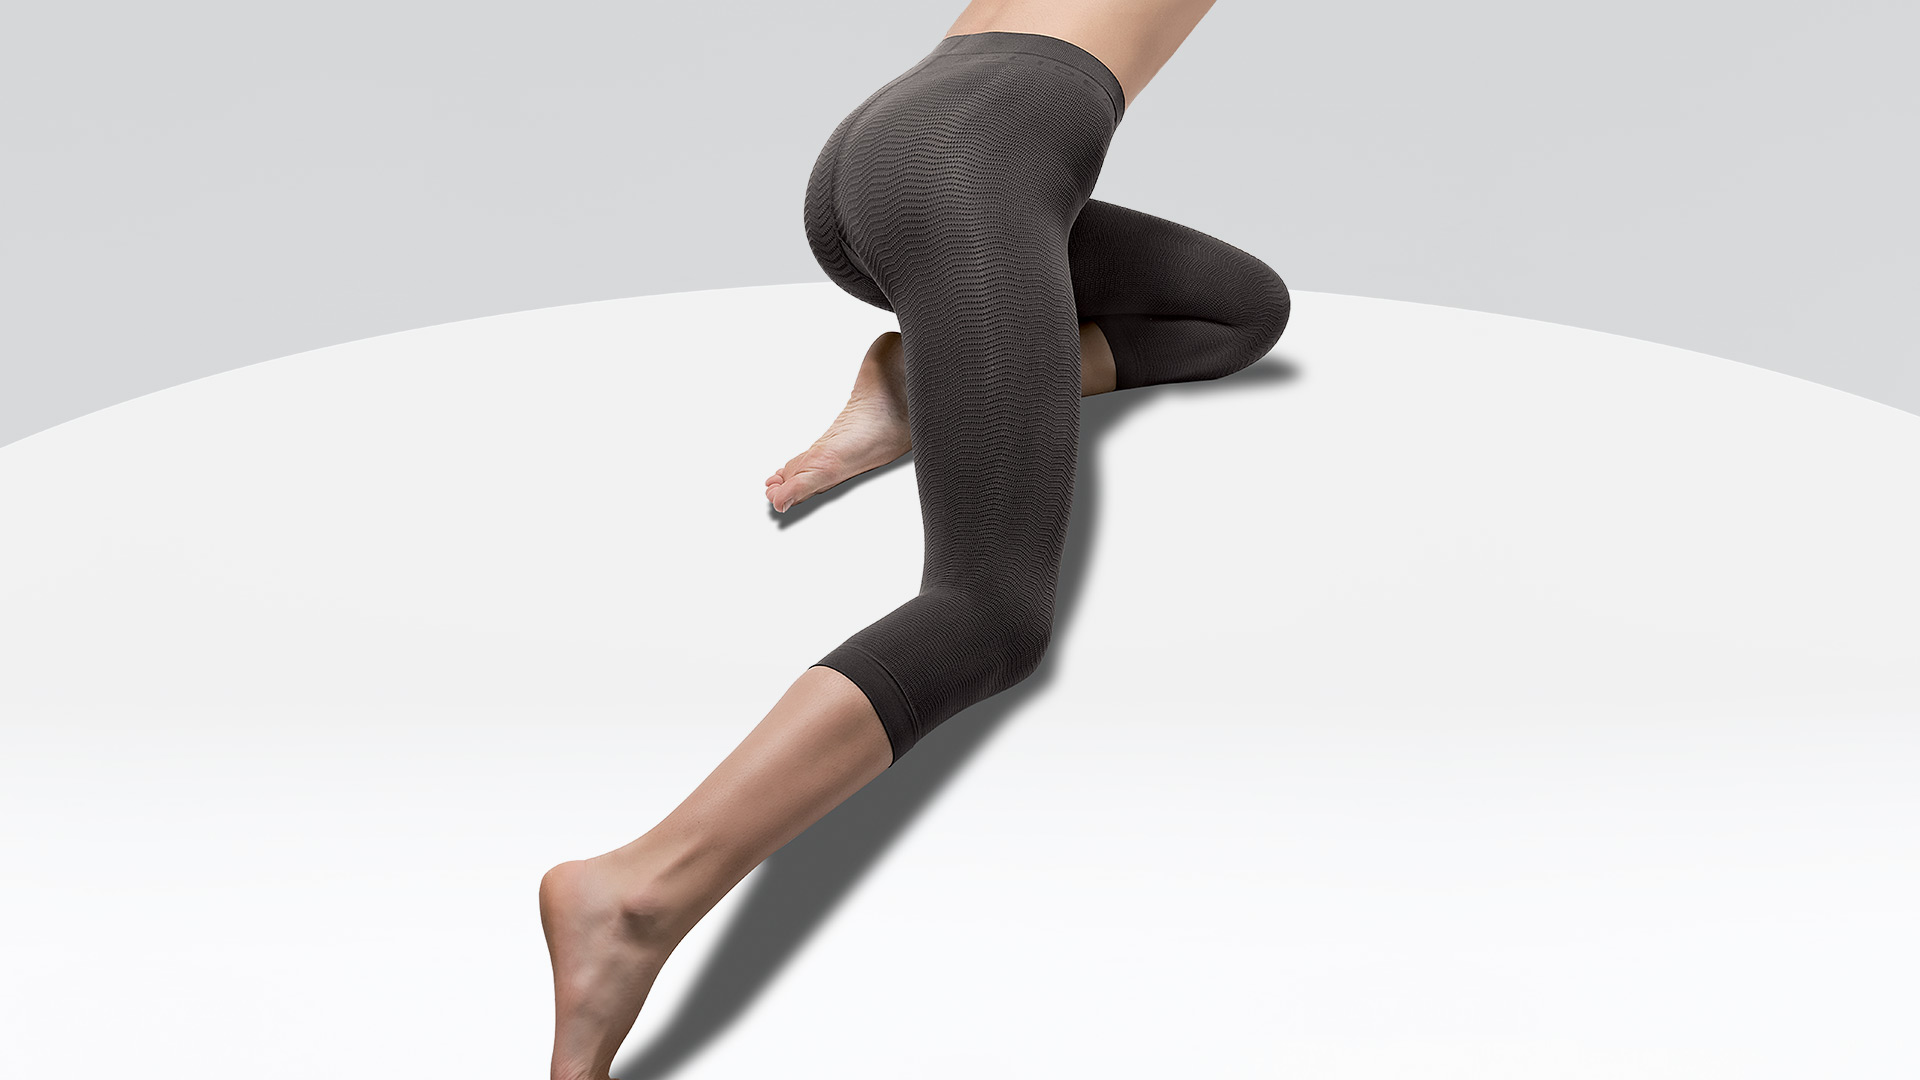 00a3dfd75ef36 Graduated compression stockings | Support hosiery | Elastic tights ...